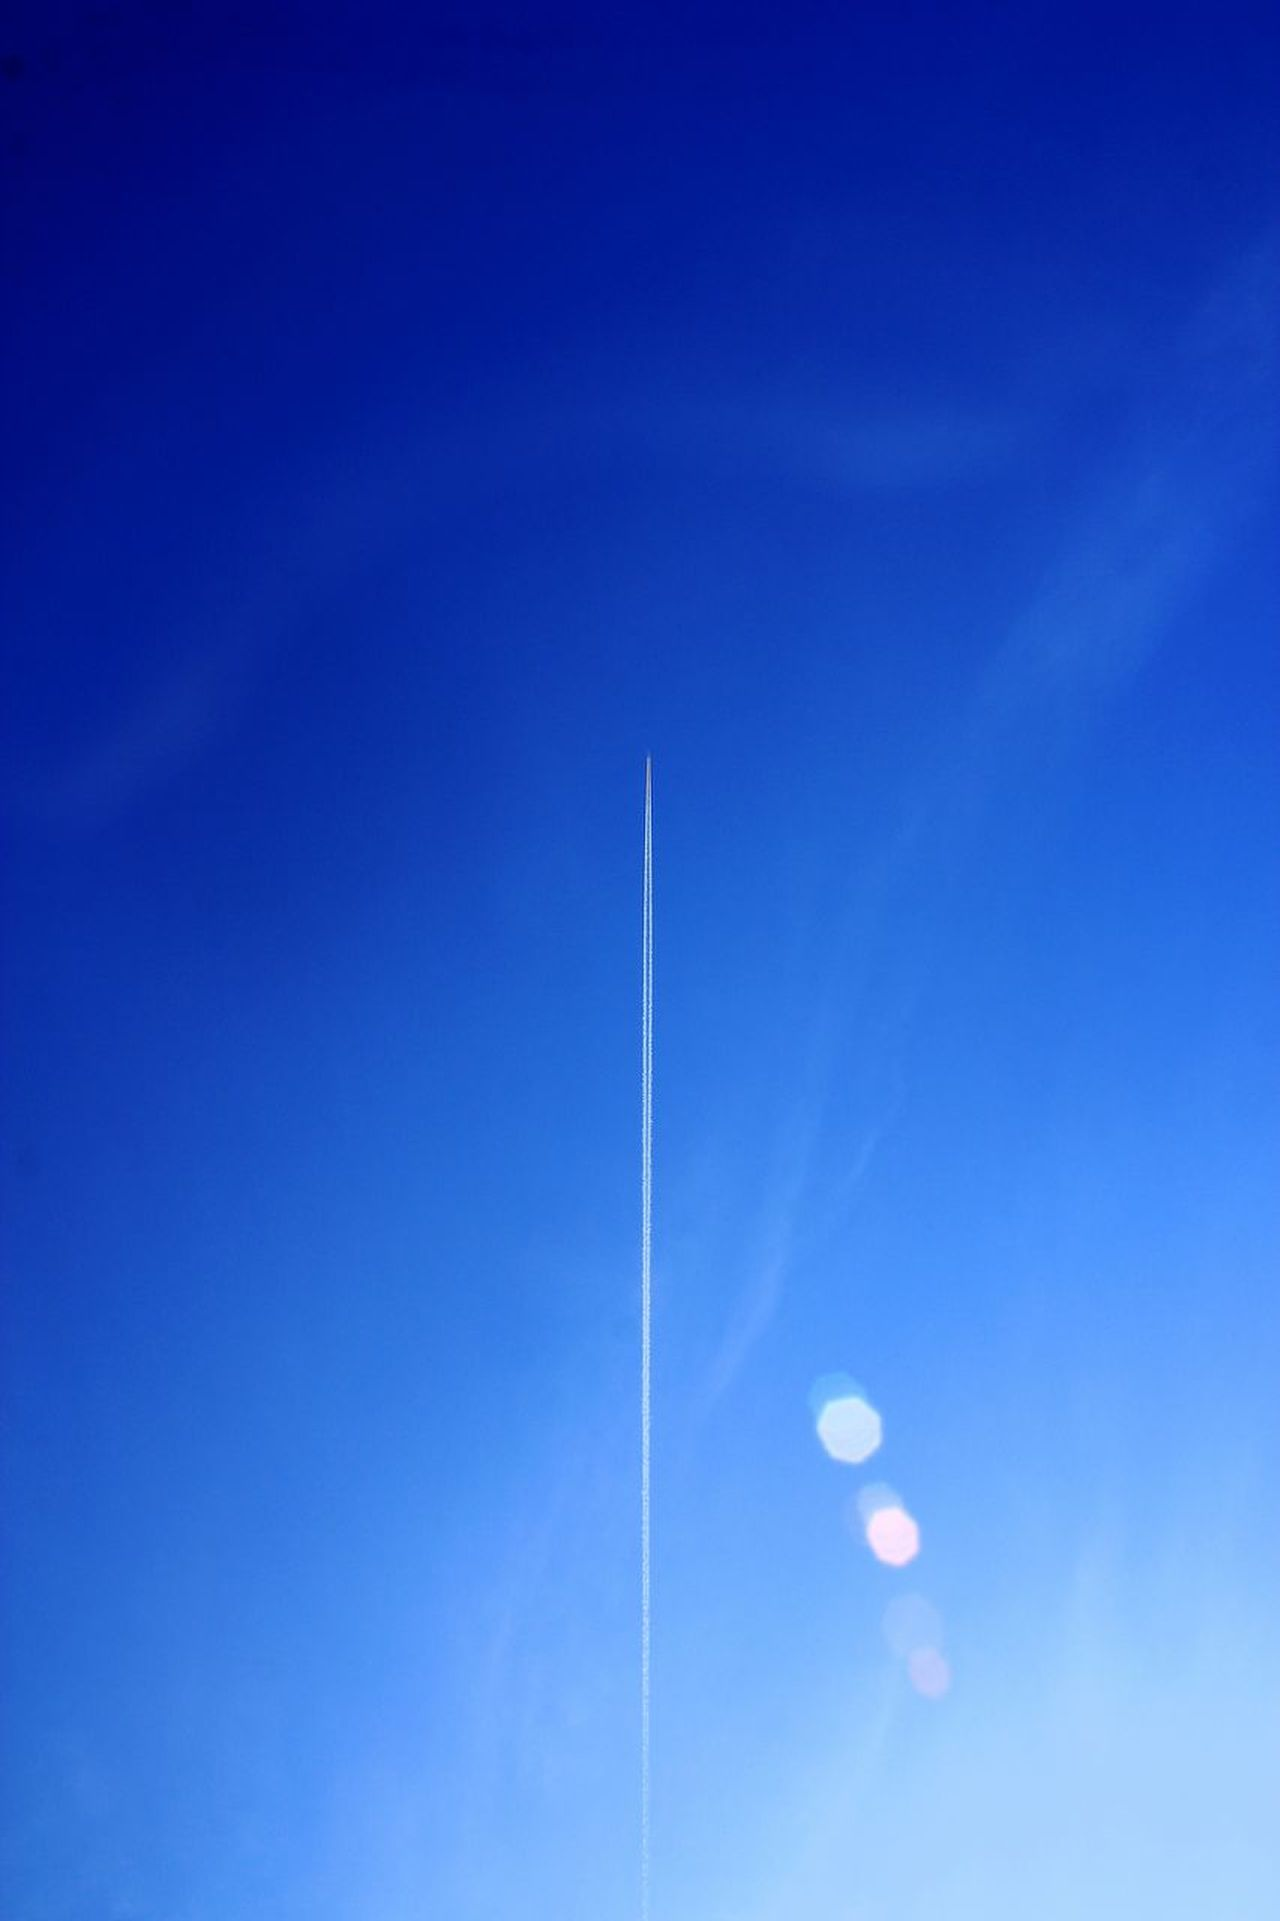 Blue Vapor Trail Clear Sky Flying Airshow Low Angle View Airplane Day No People Sky Outdoors Motion Aerobatics Fighter Plane Air Vehicle Air Force Nature